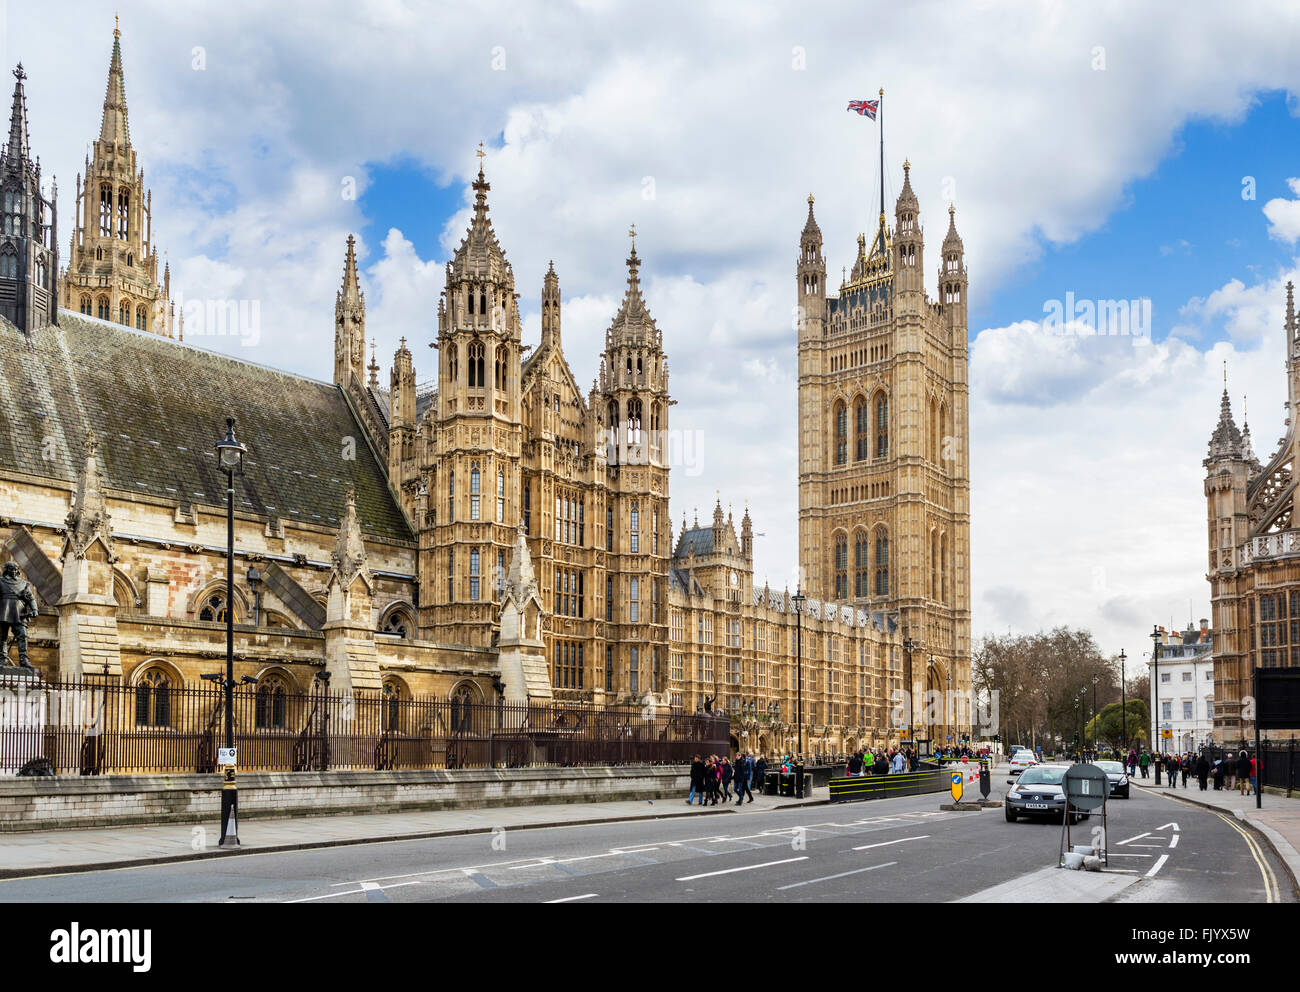 Palace of Westminster (Houses of Parliament) from Parliament Square, Westminster, London, England, UK Stock Photo